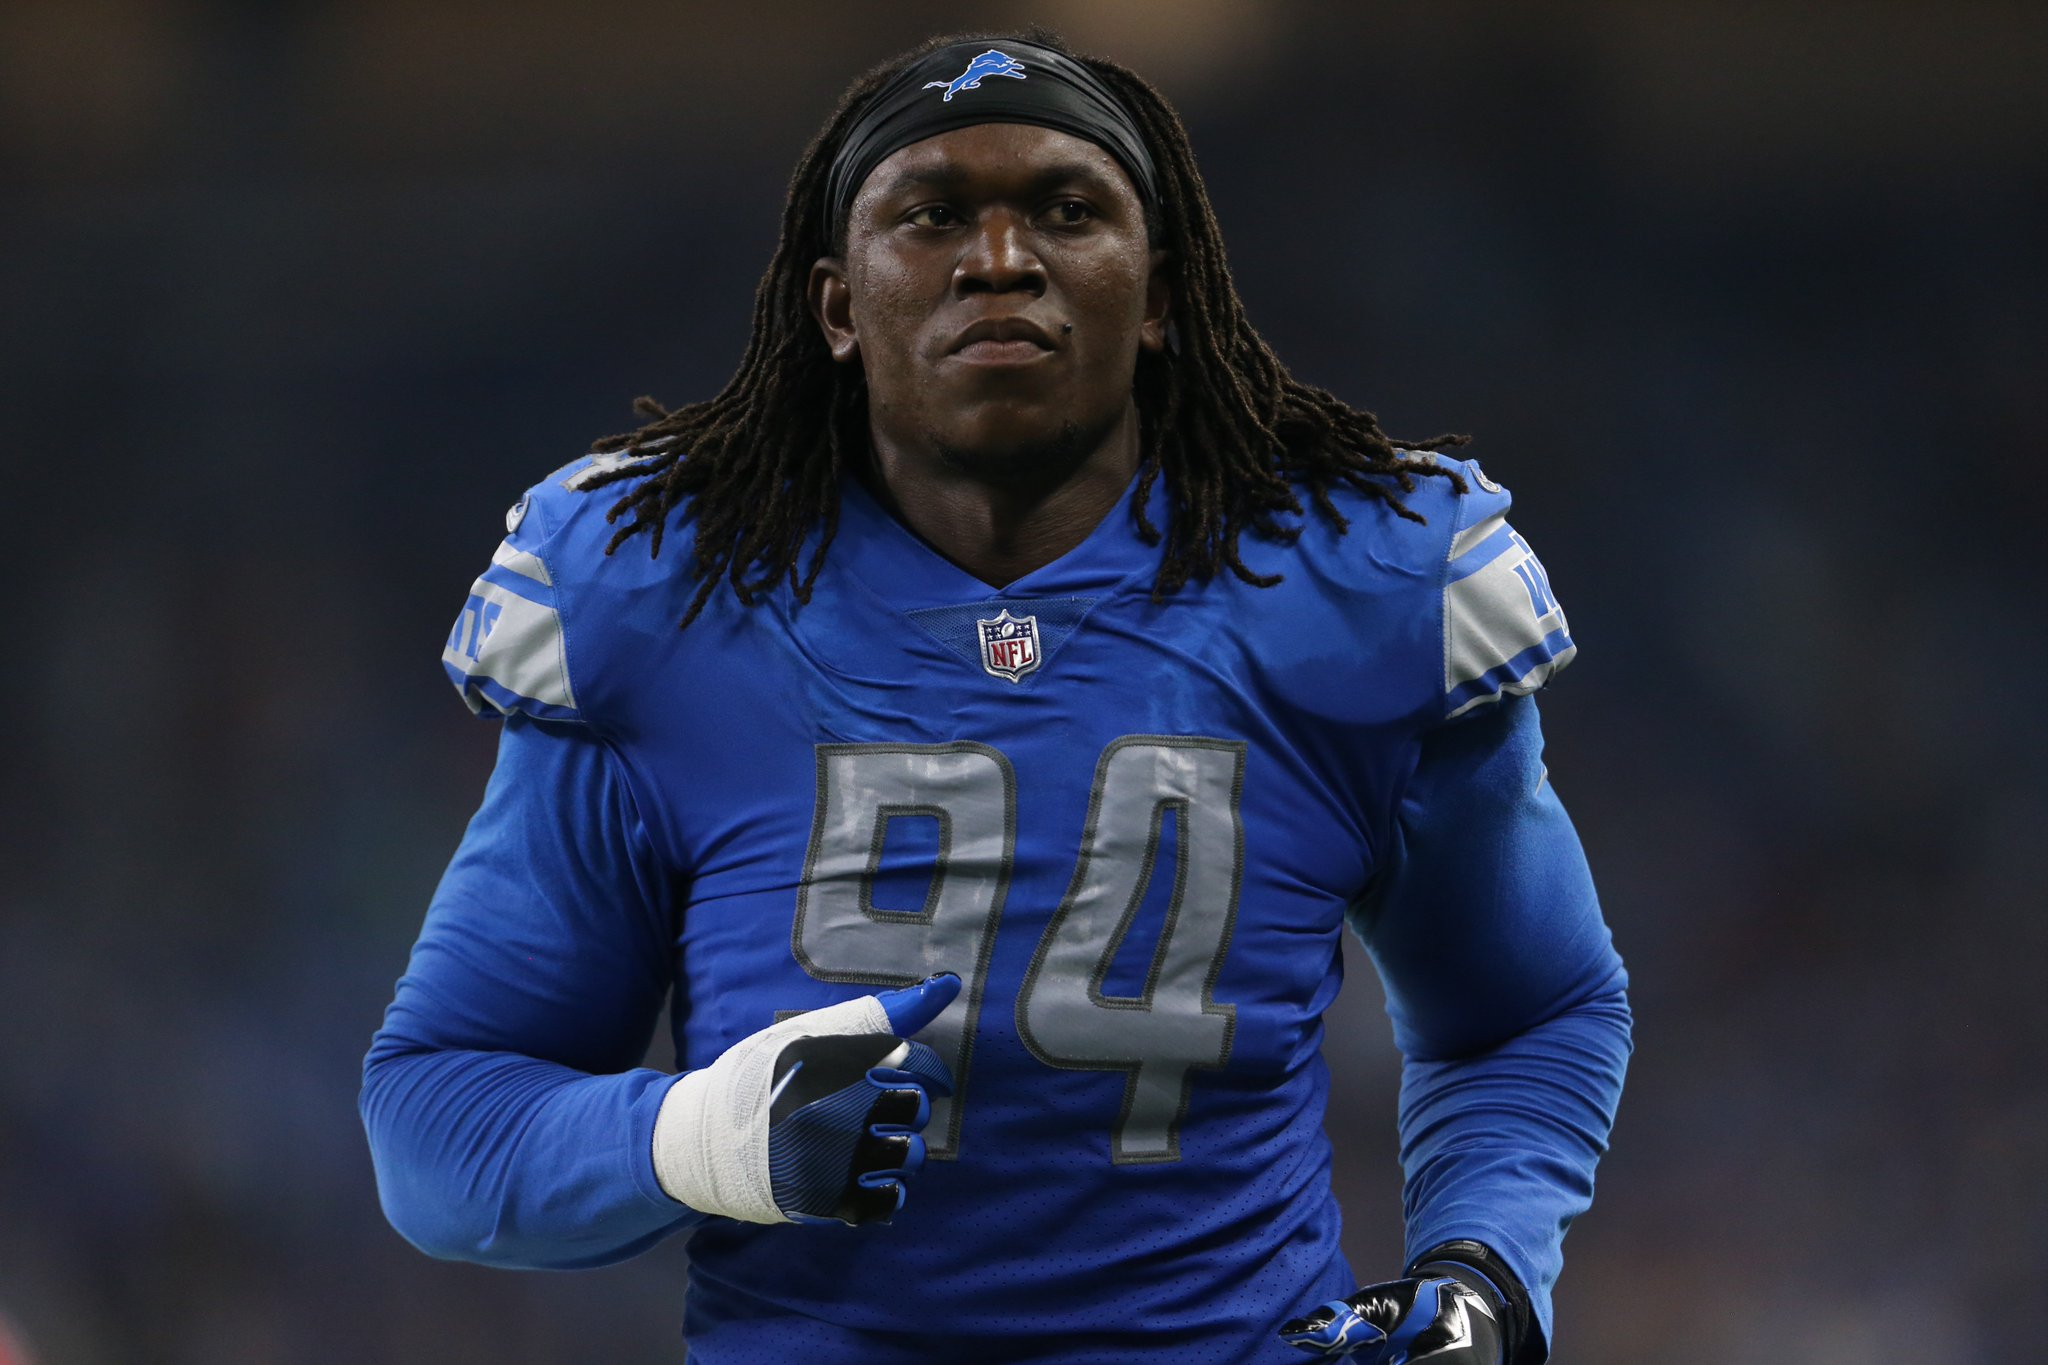 Lions use franchise tag on DE Ziggy Ansah https://t.co/zKsVbhyaQ9 https://t.co/VEEWcLSkTf